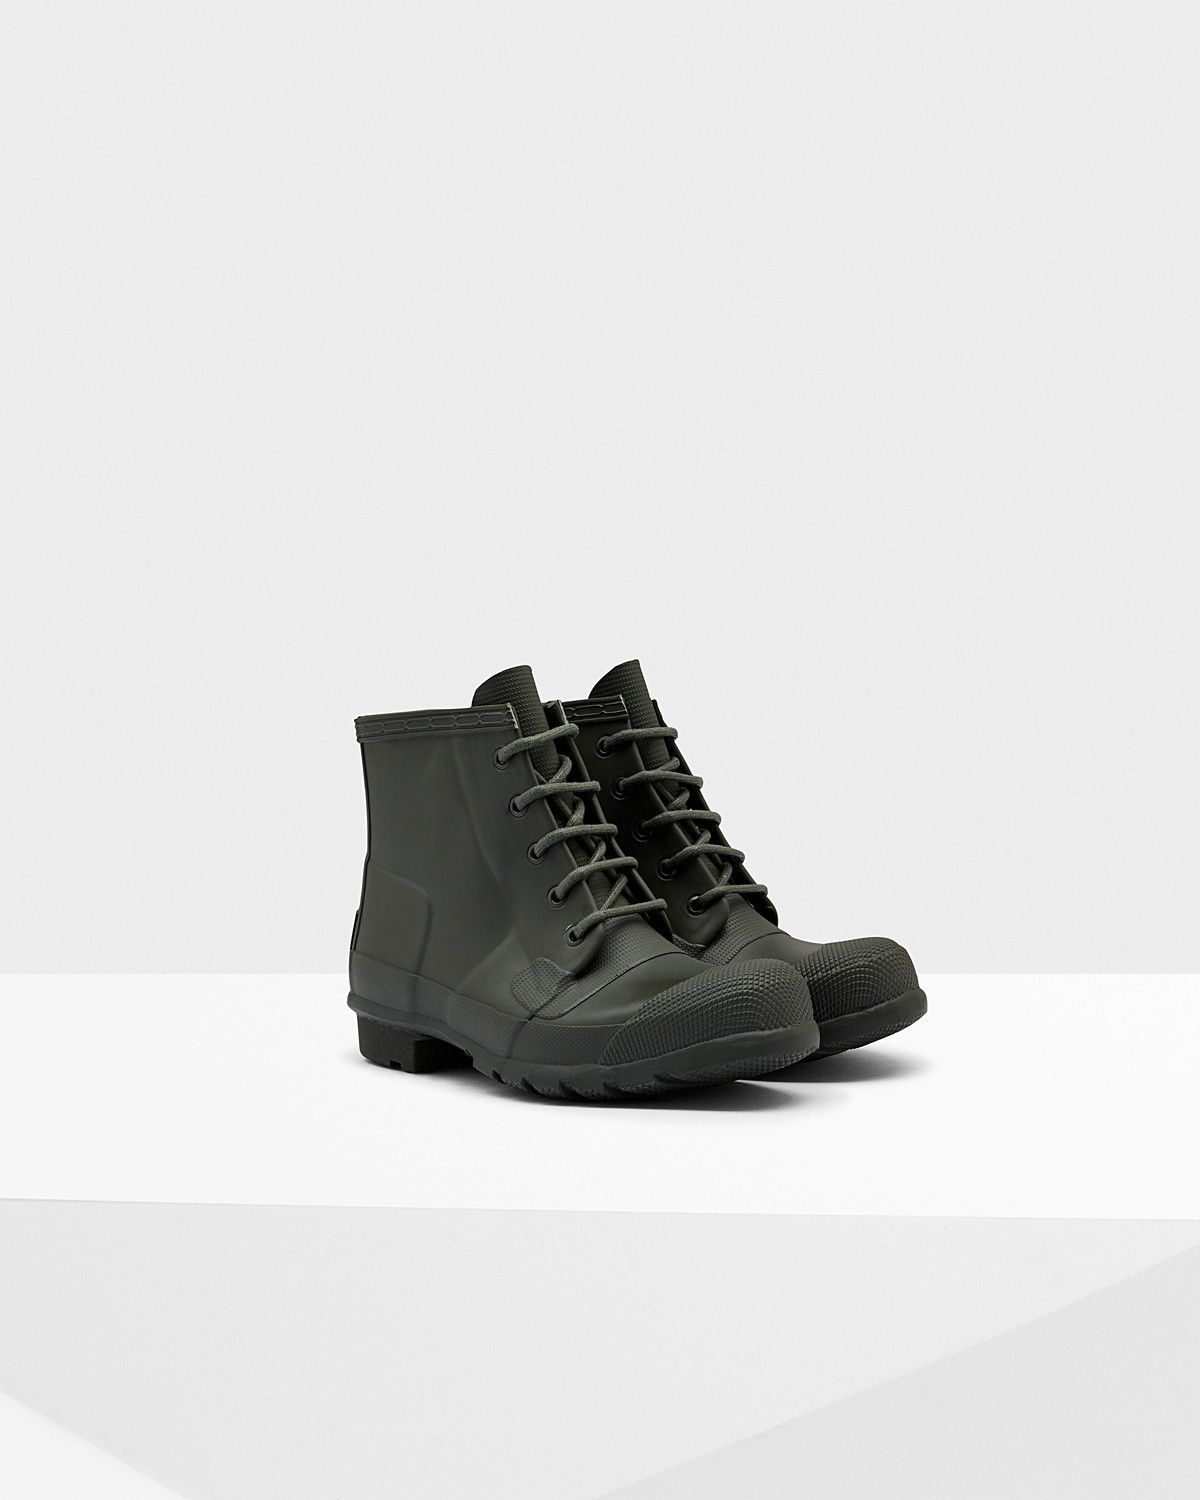 A lace-up, waterproof ankle boot in matte rubber.